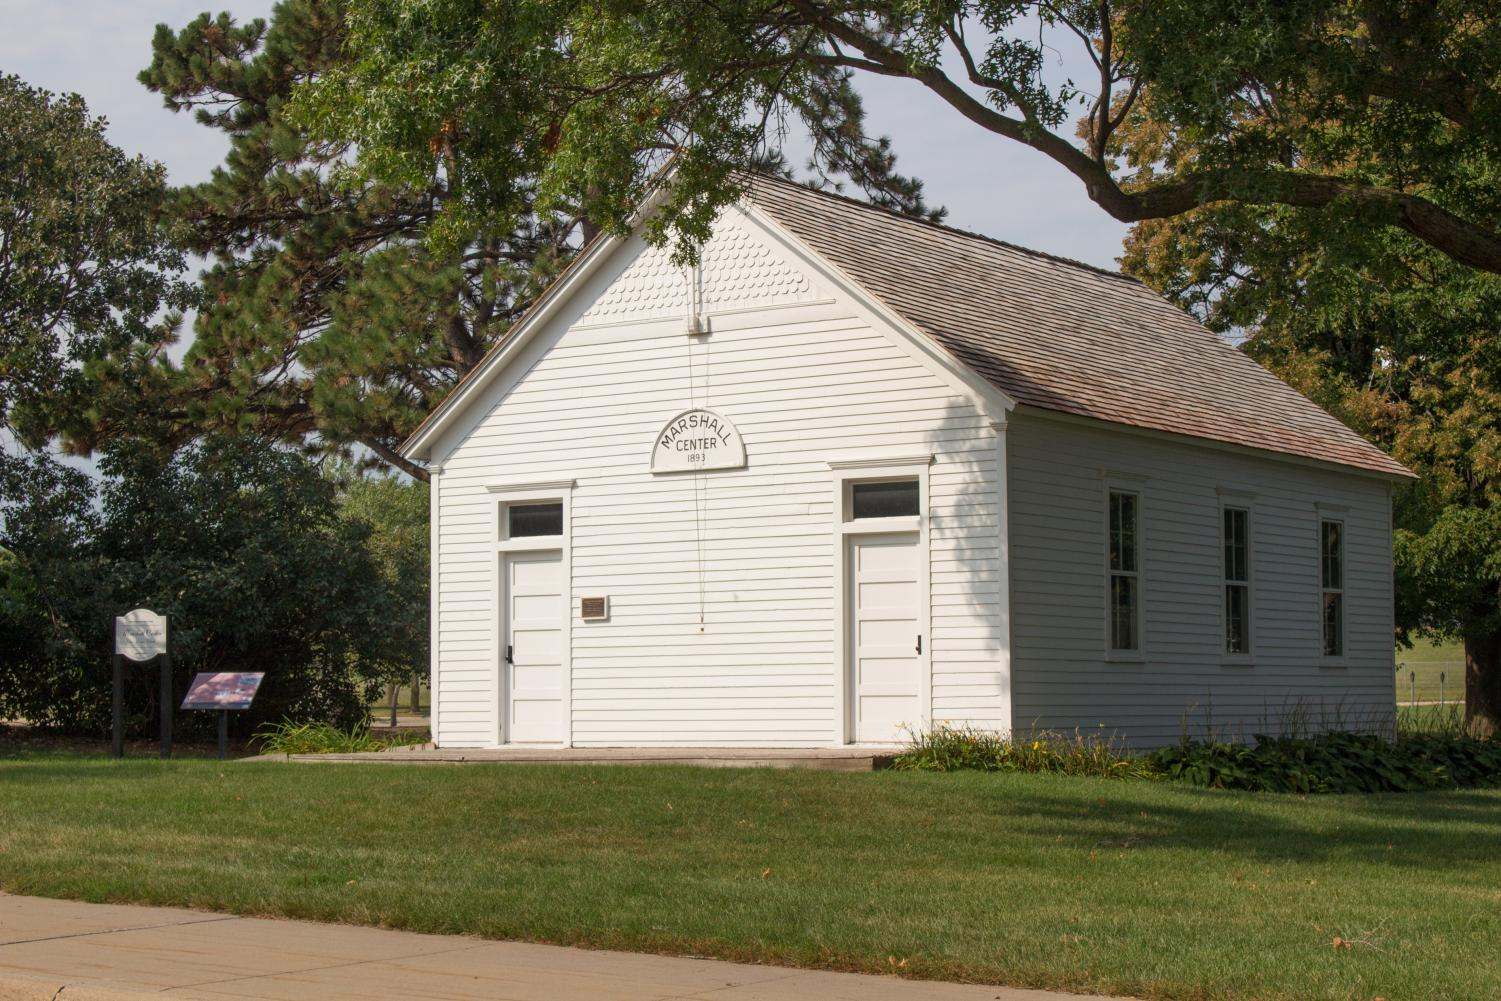 UNI's one-room schoolhouse is located behind the Student Health Center and plays host to different events throughout the year.